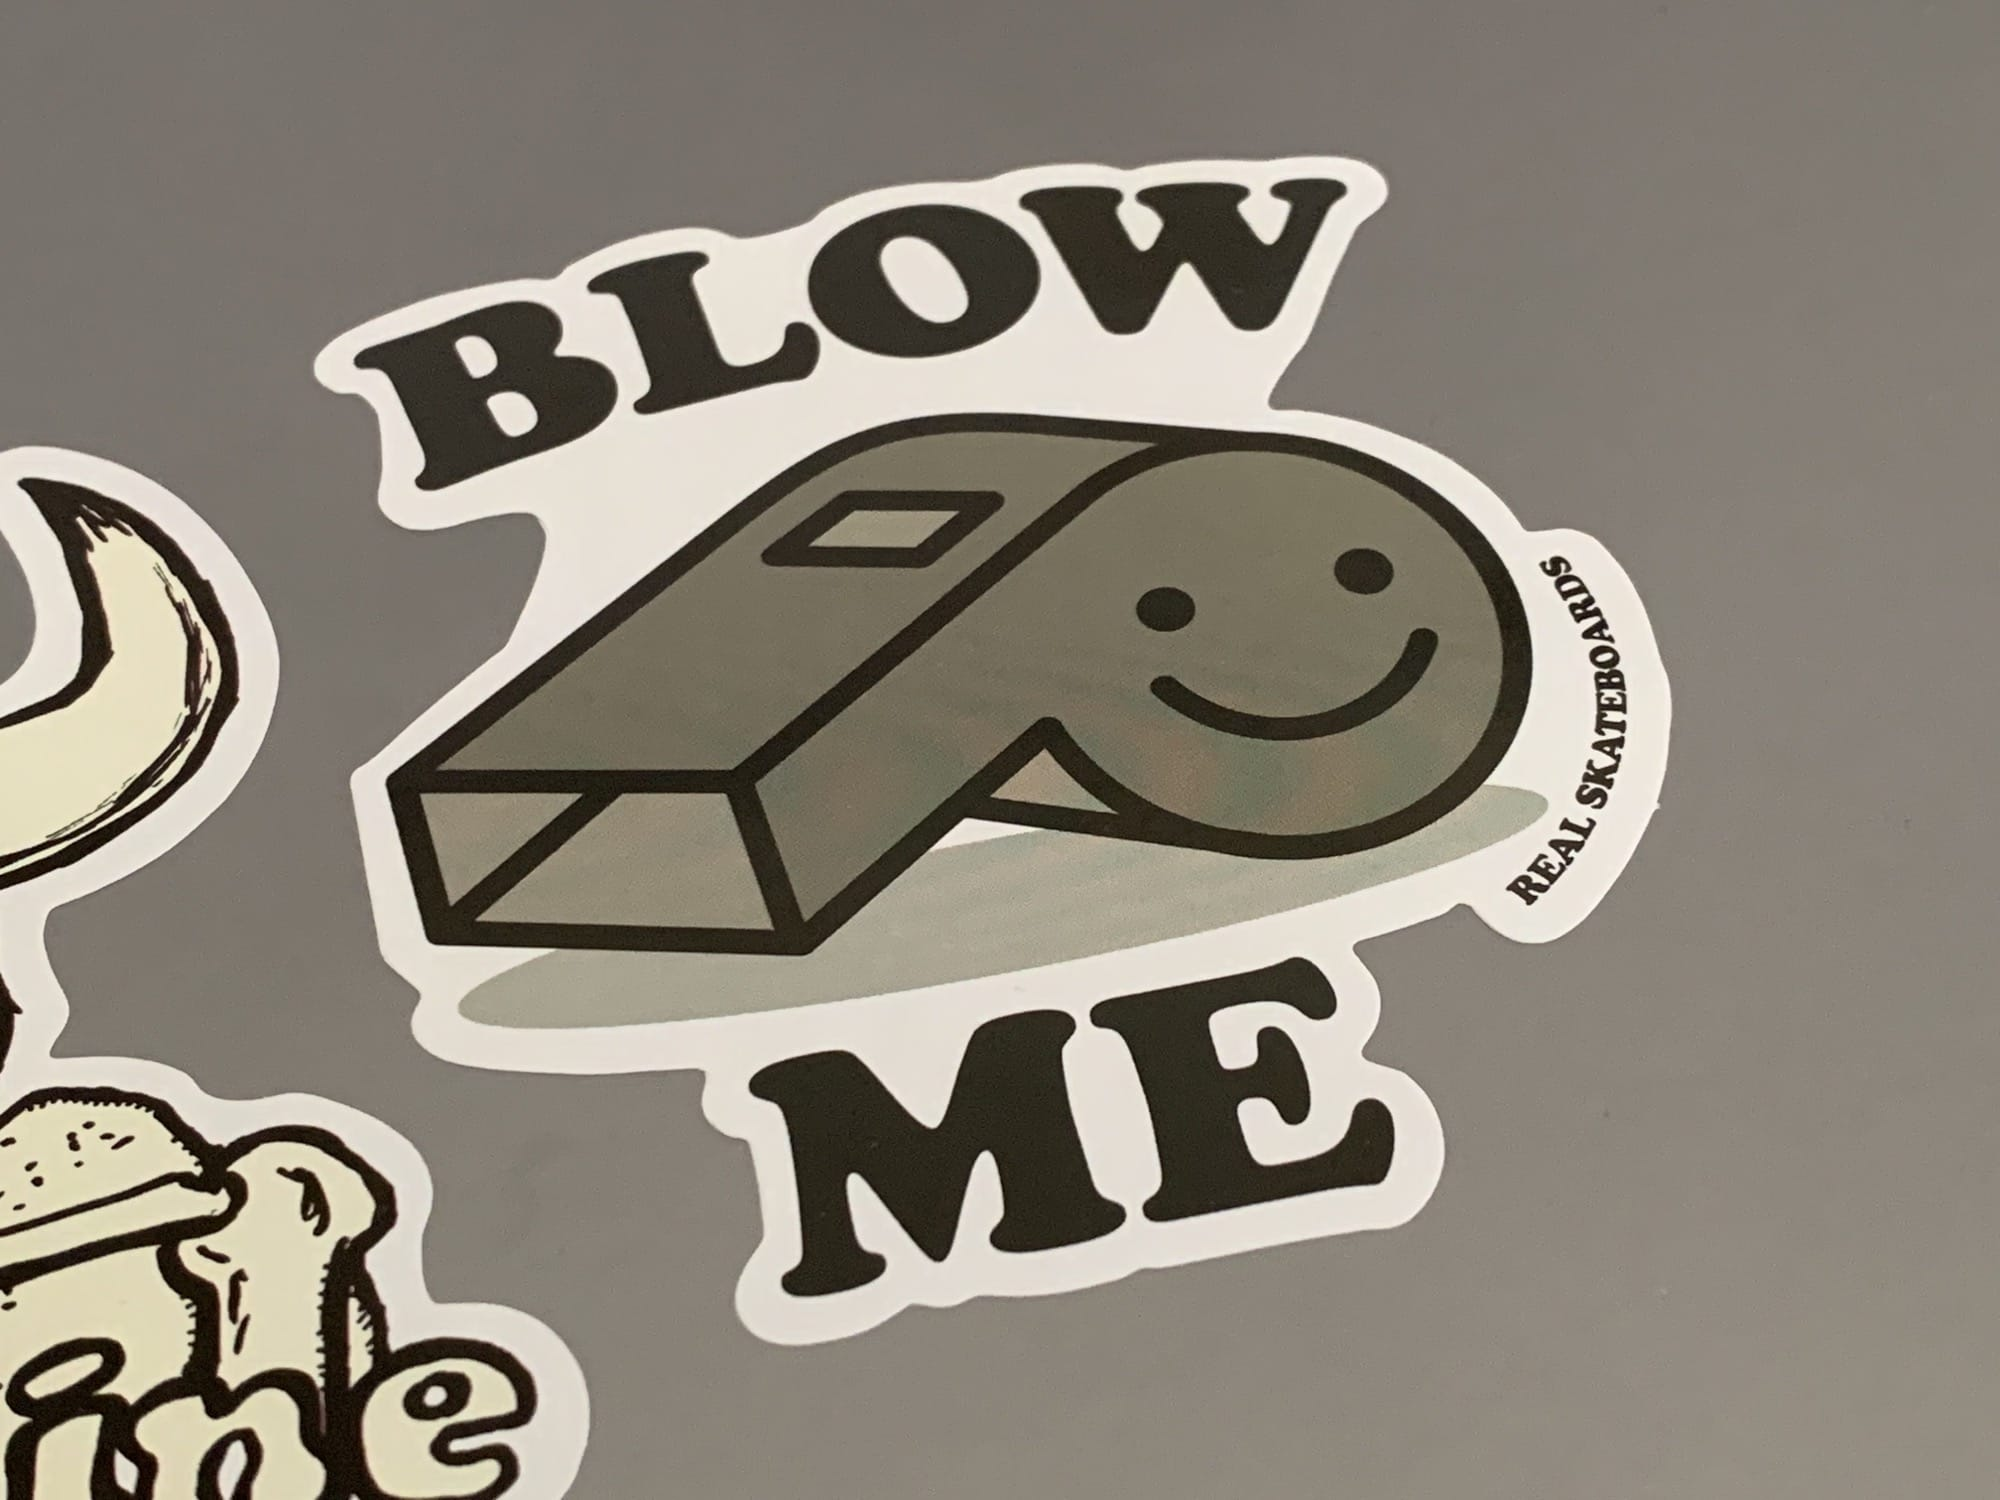 Real Skateboards Blow Me sticker is not the most subtle statement.